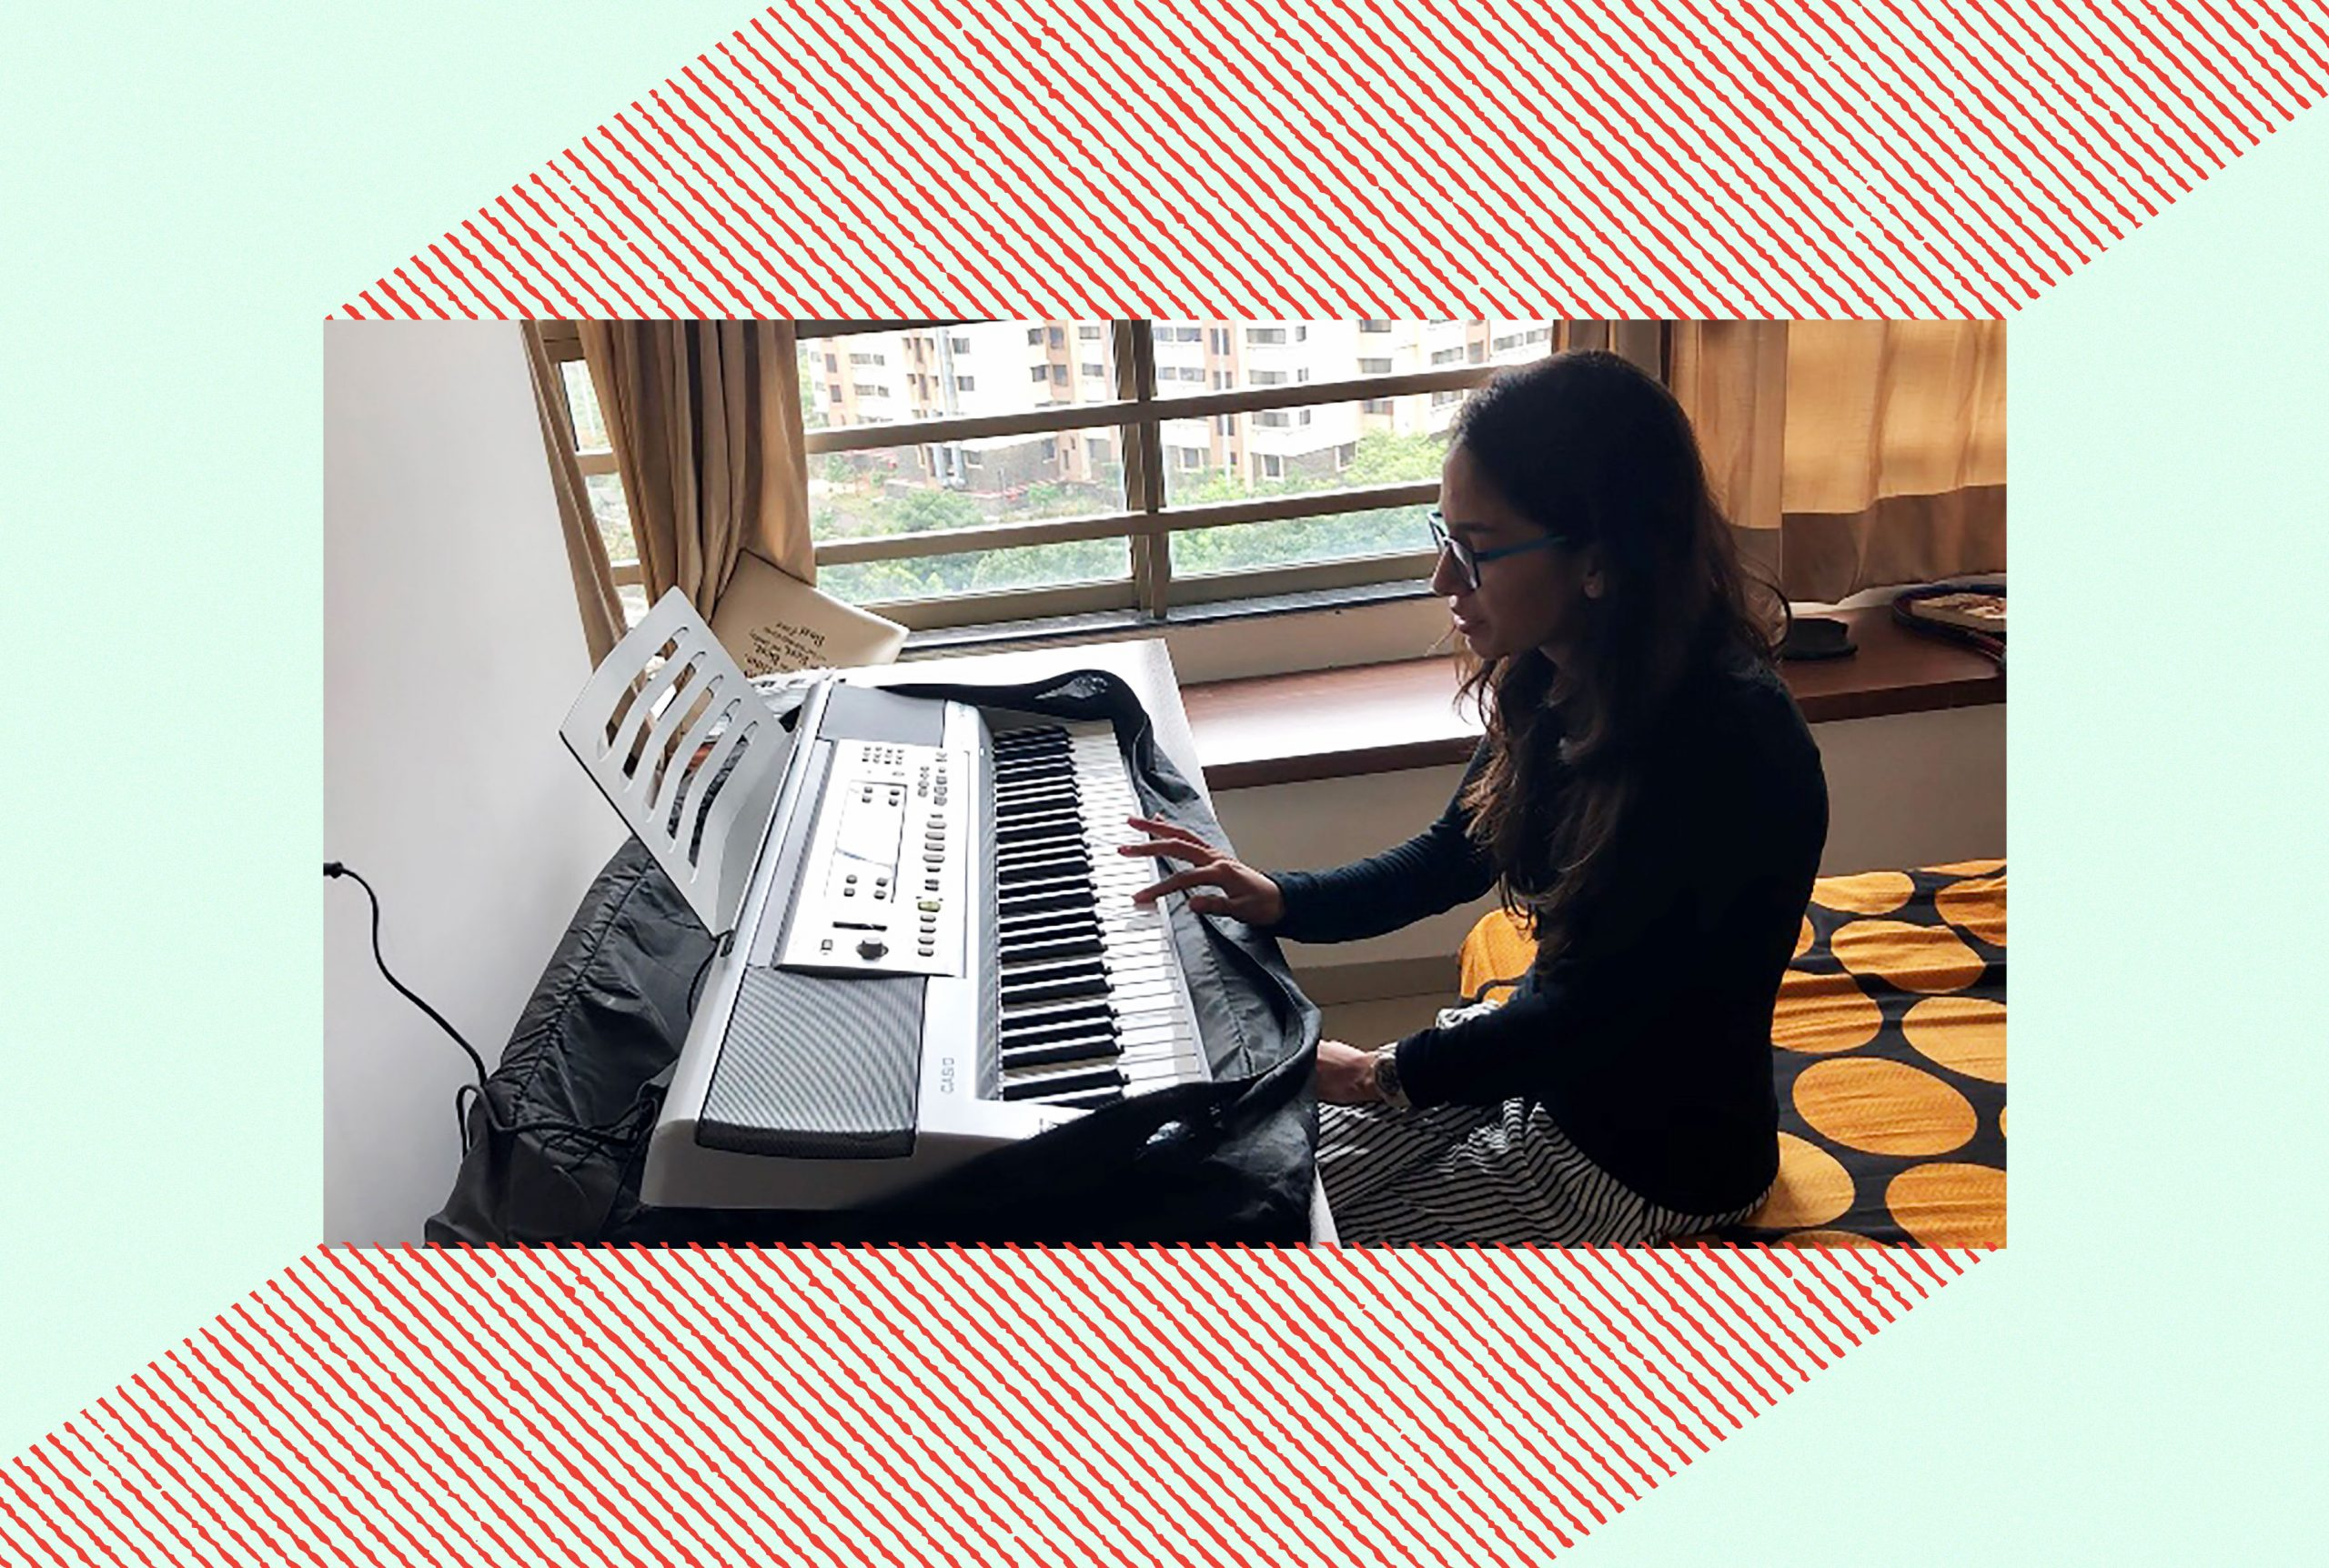 an image of the author playing piano